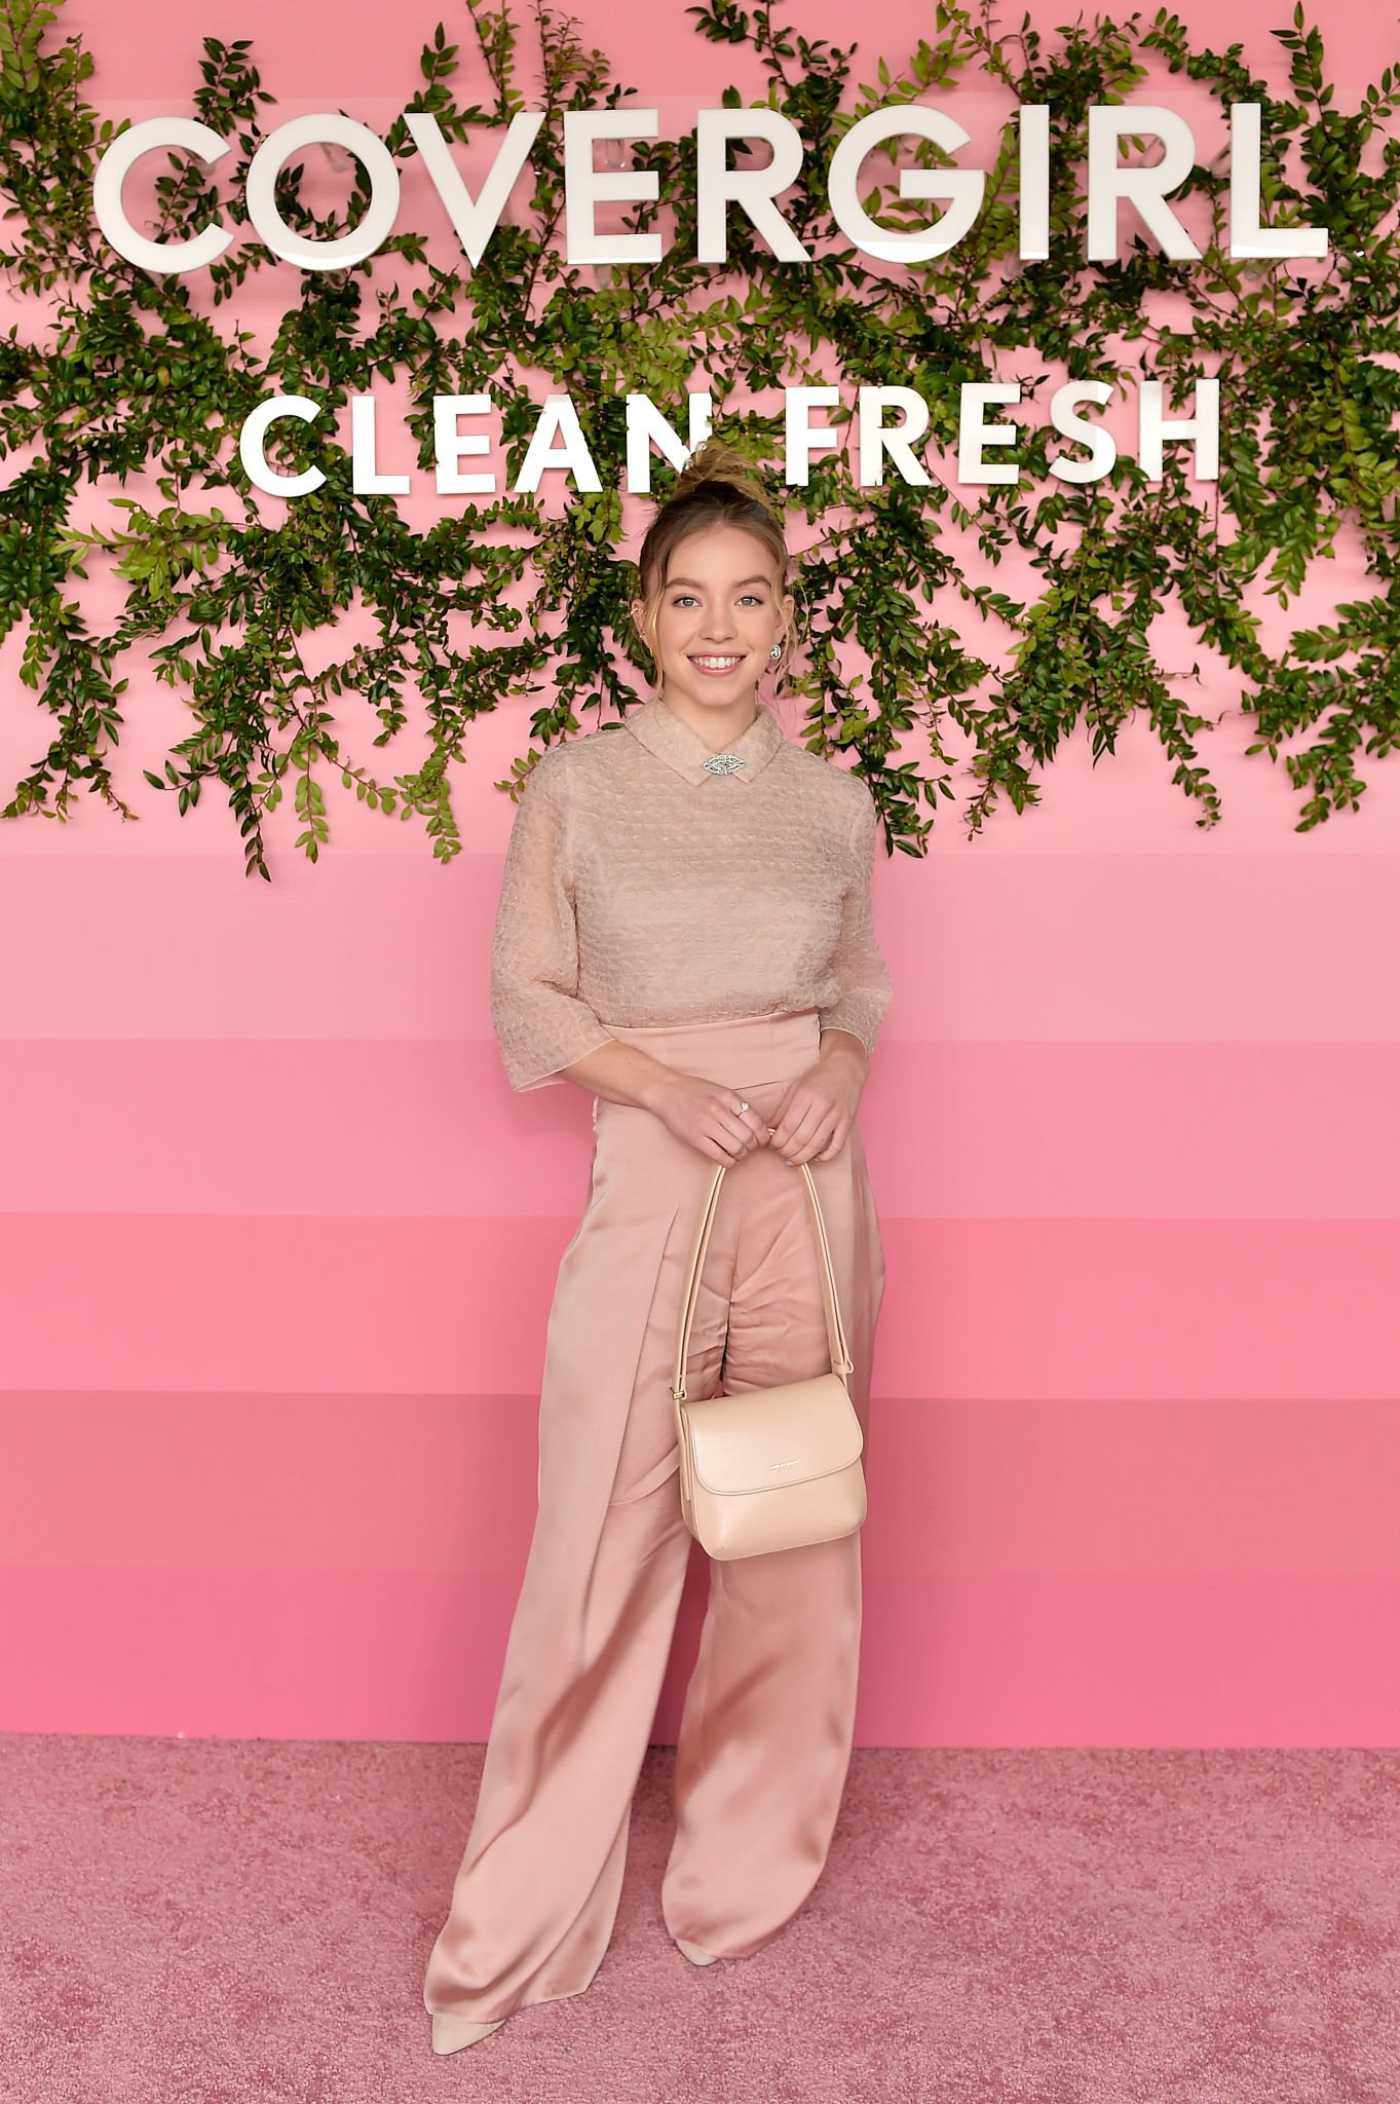 Sydney Sweeney Attends the Covergirl Clean Fresh Launch Party in Los Angeles 01/16/2020